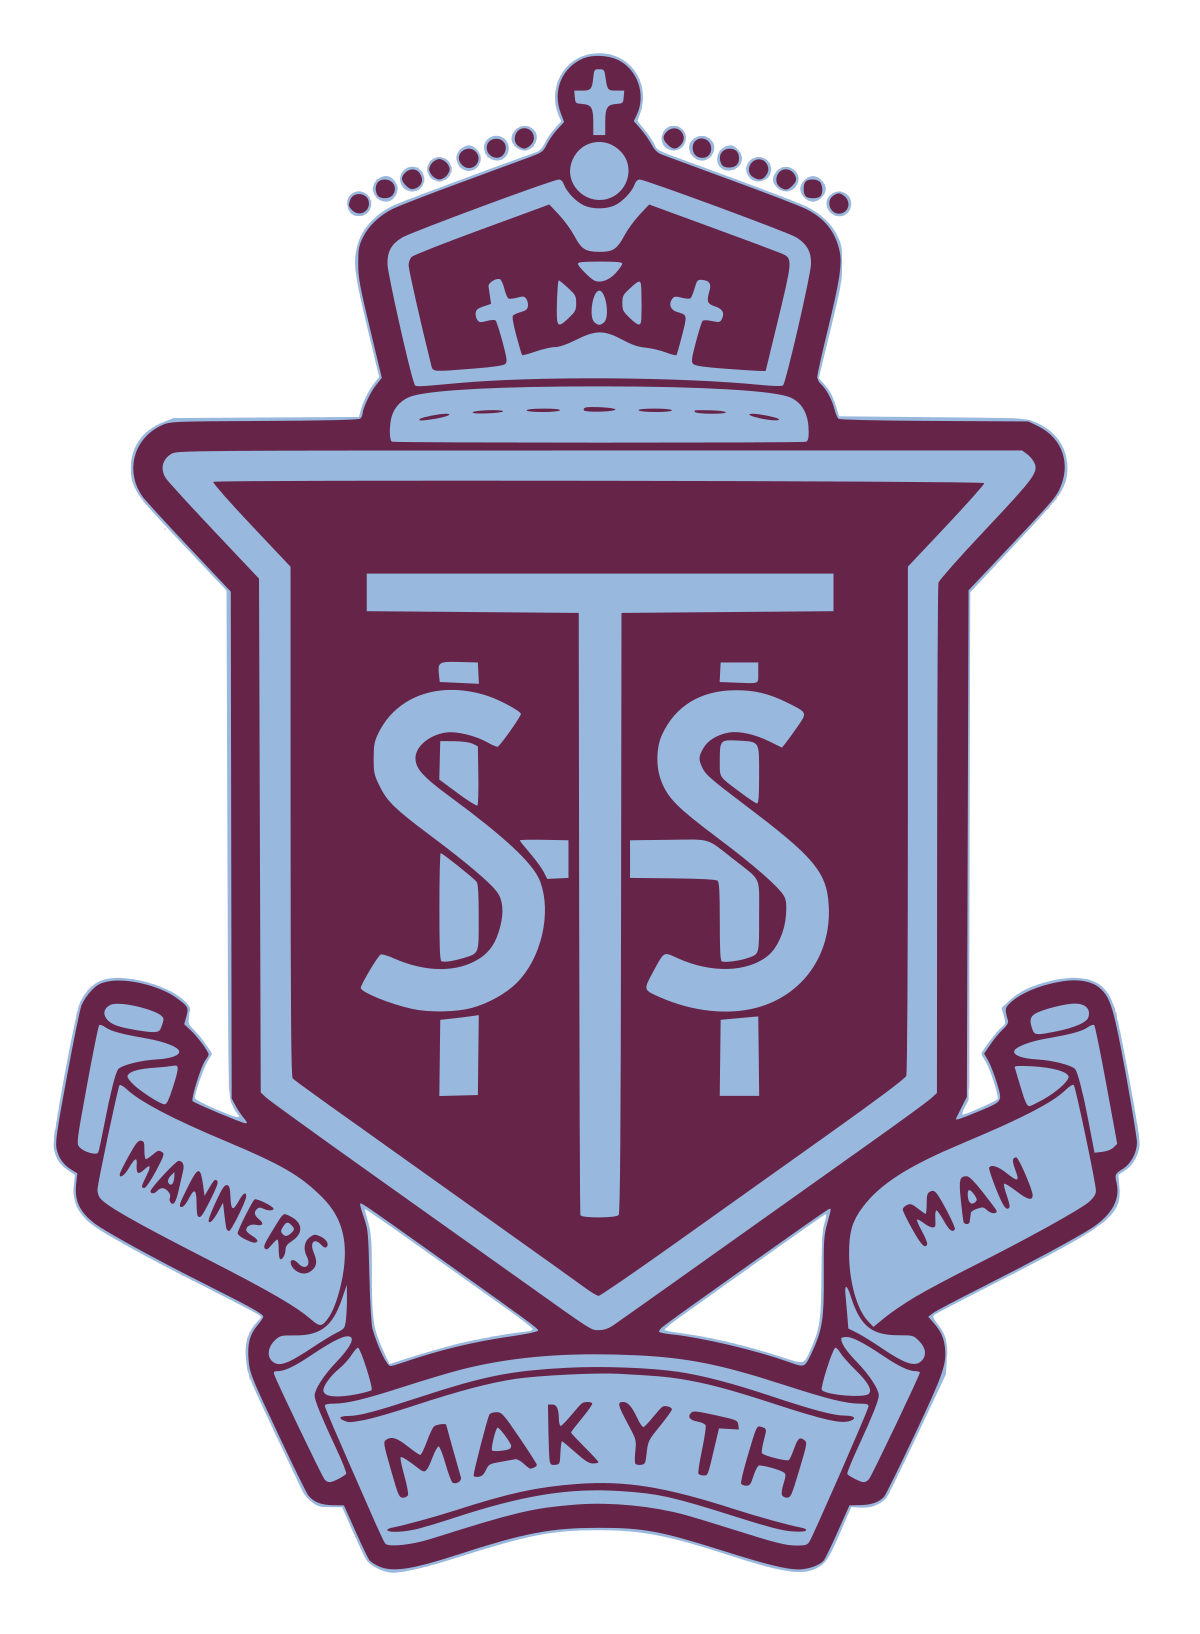 Senior high school clipart svg free Sydney Technical High School - Wikipedia svg free